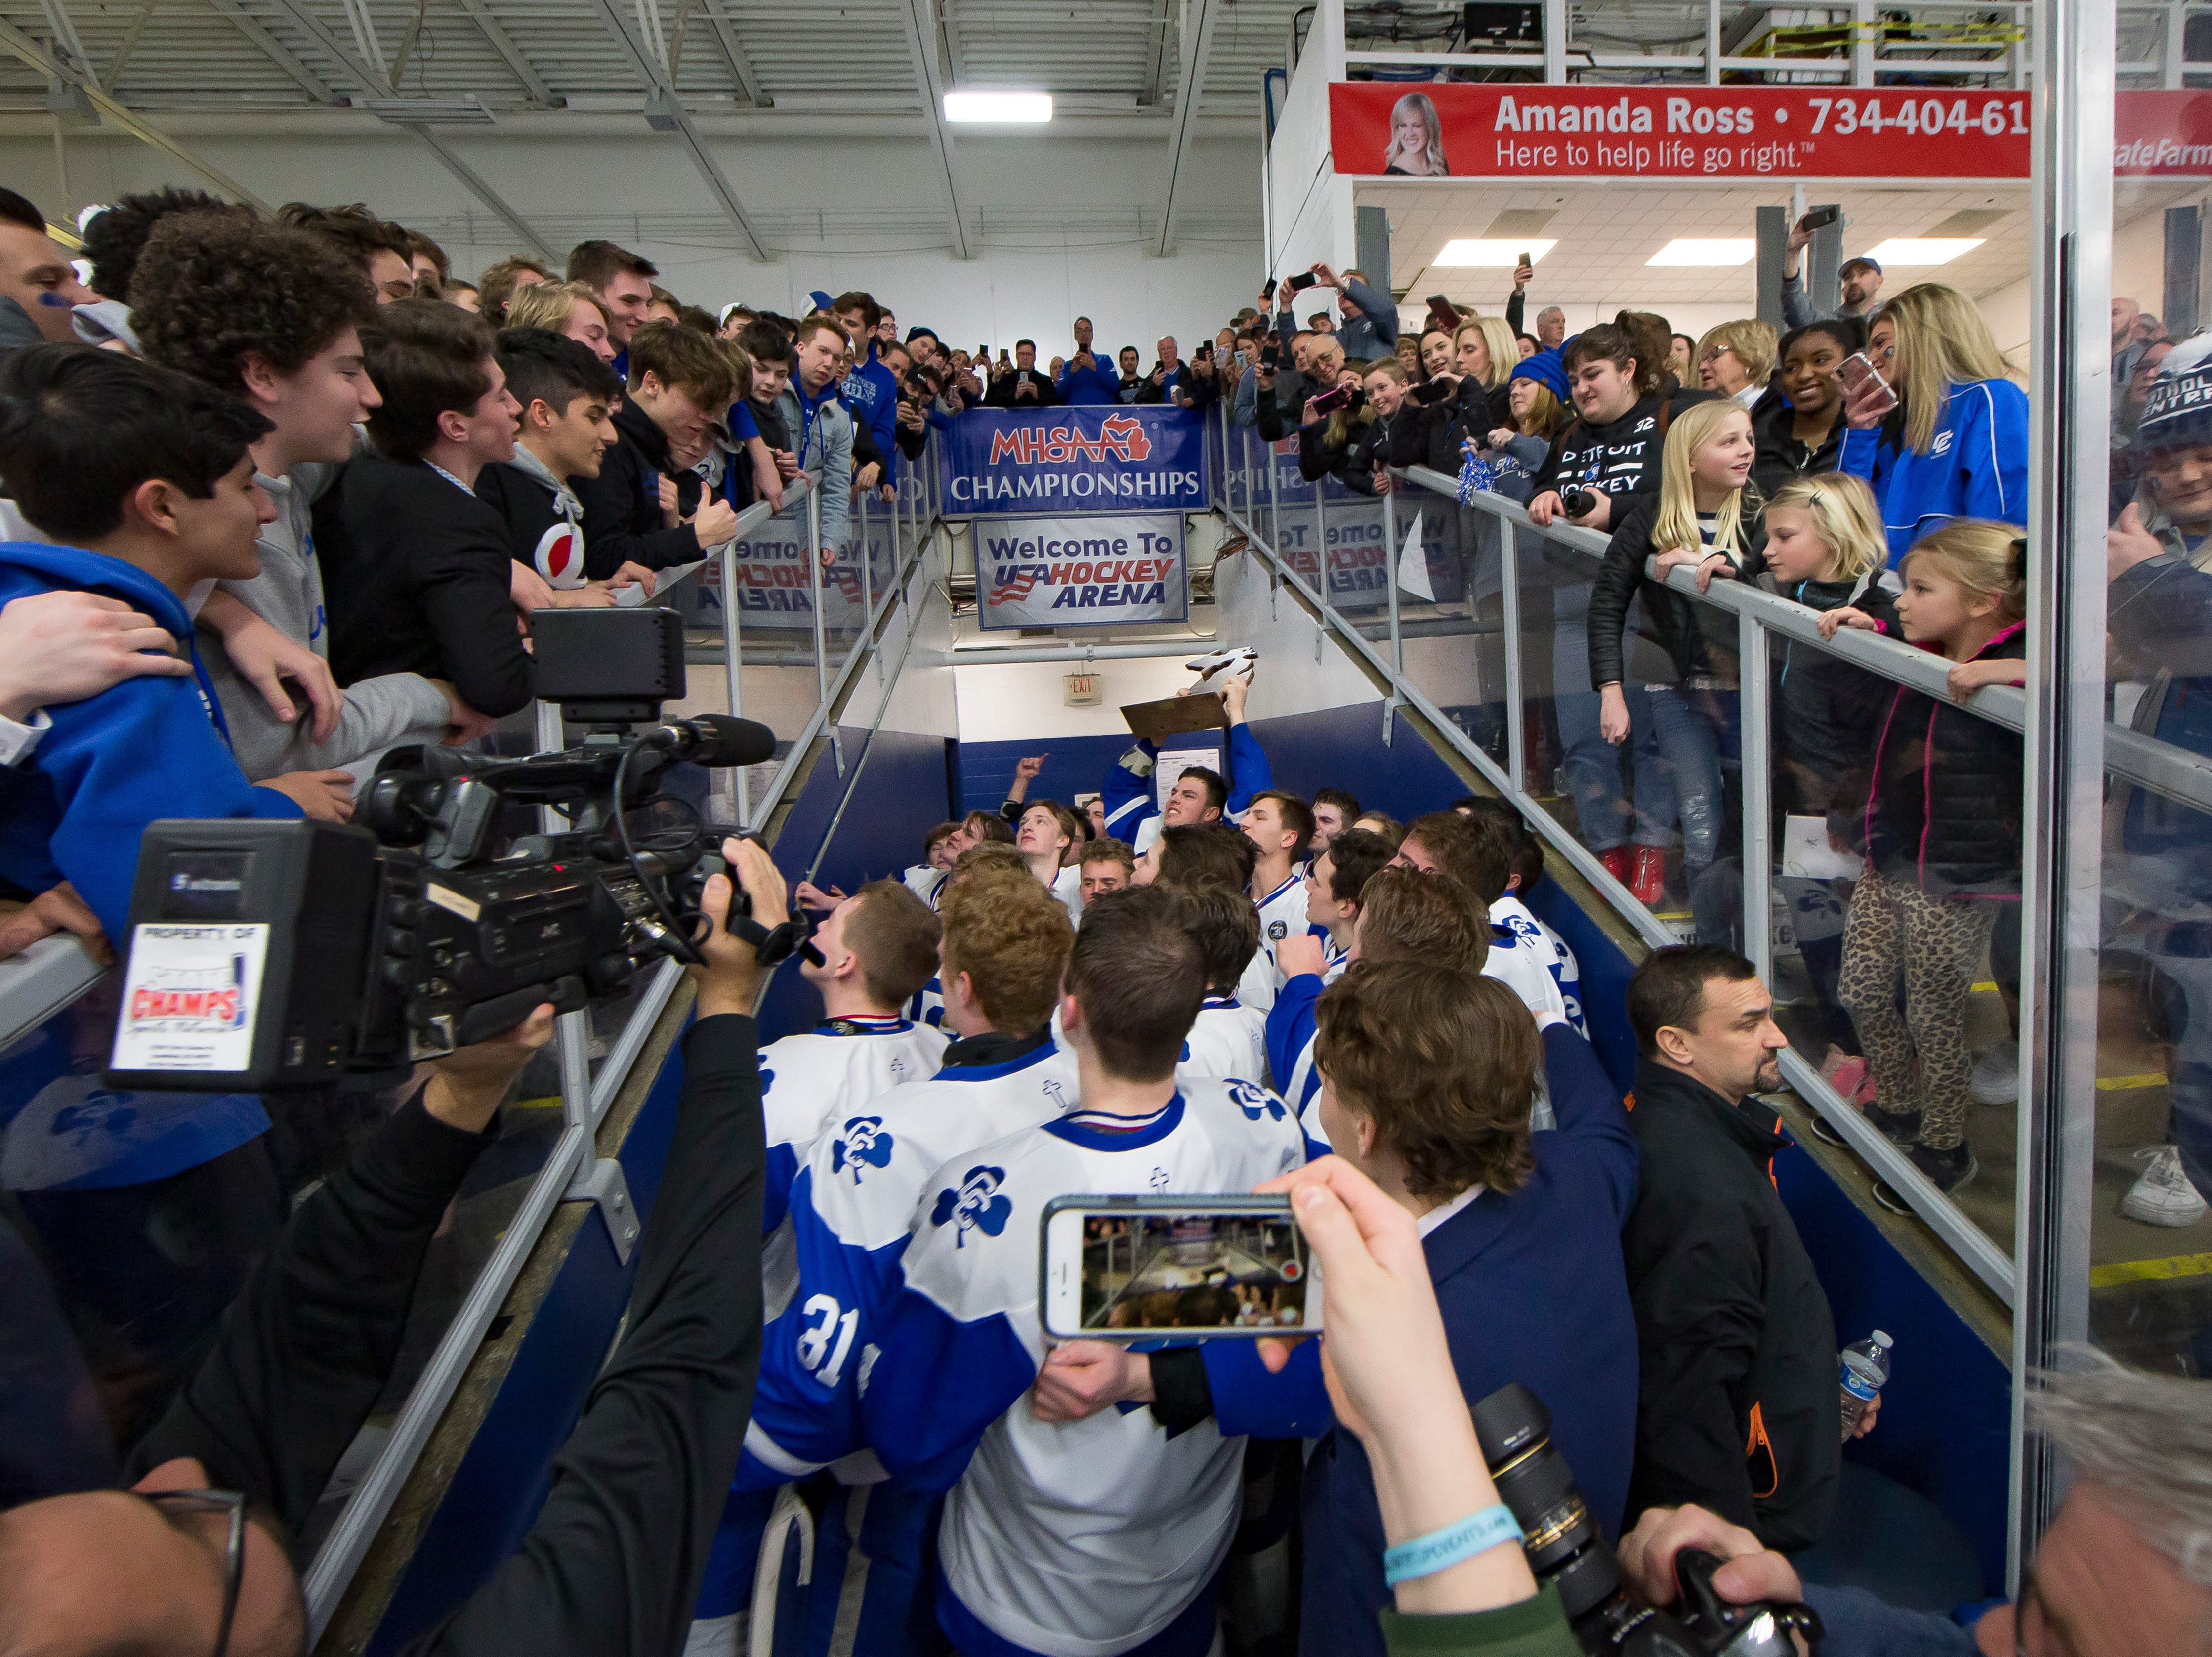 Catholic Central players celebrate with the fans on their way to the locker room after defeating Saginaw Heritage 3-1.